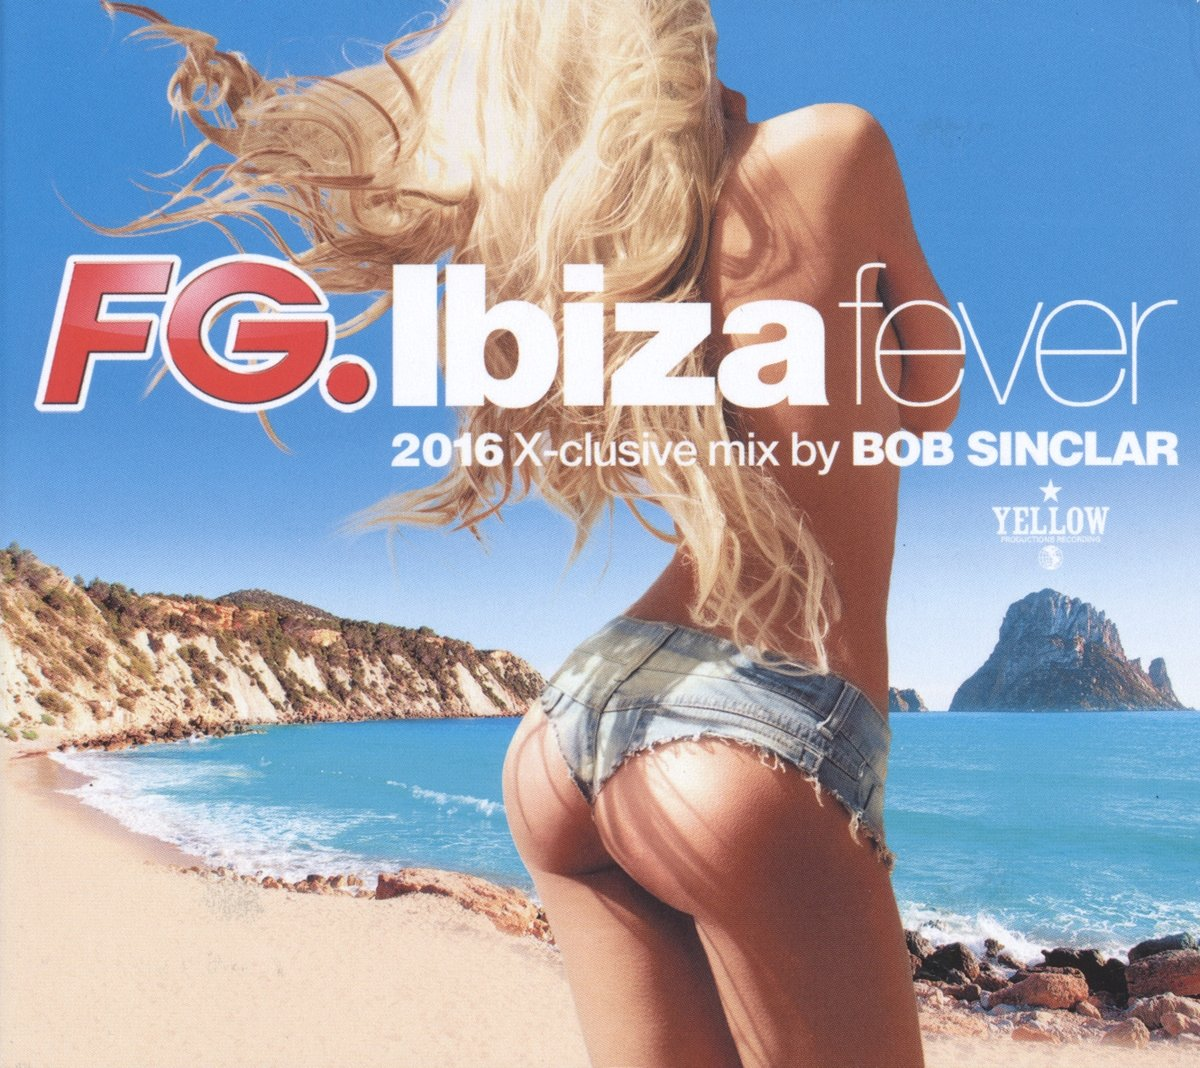 Ibiza Fever At the price 2016 Various Sale price